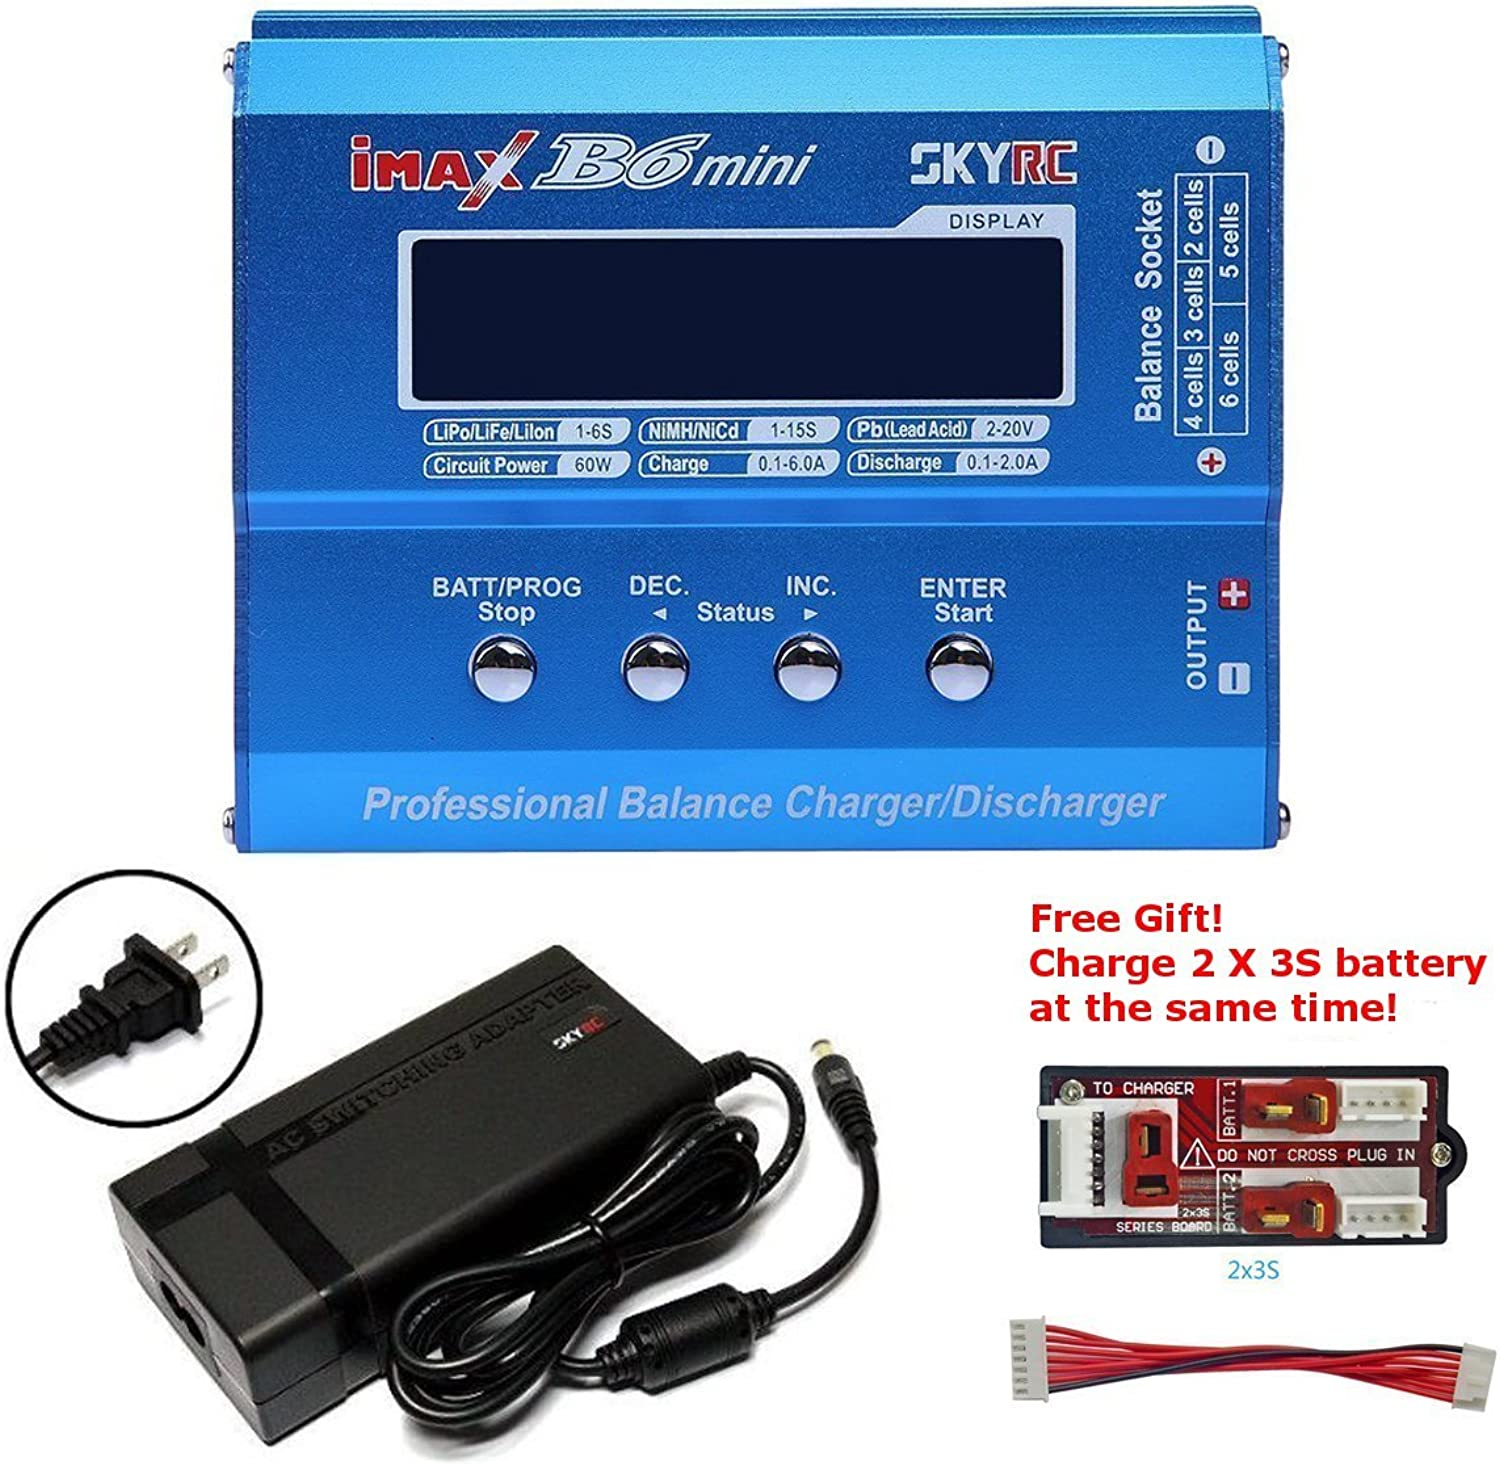 SKYRC iMAX B6 Mini Professional Balance Charger Discharger for Nimh Lipo Batteries+SKYRC RC Model AC DC 15V 4A Battery Charger Power Supply Adapter (US Plug)